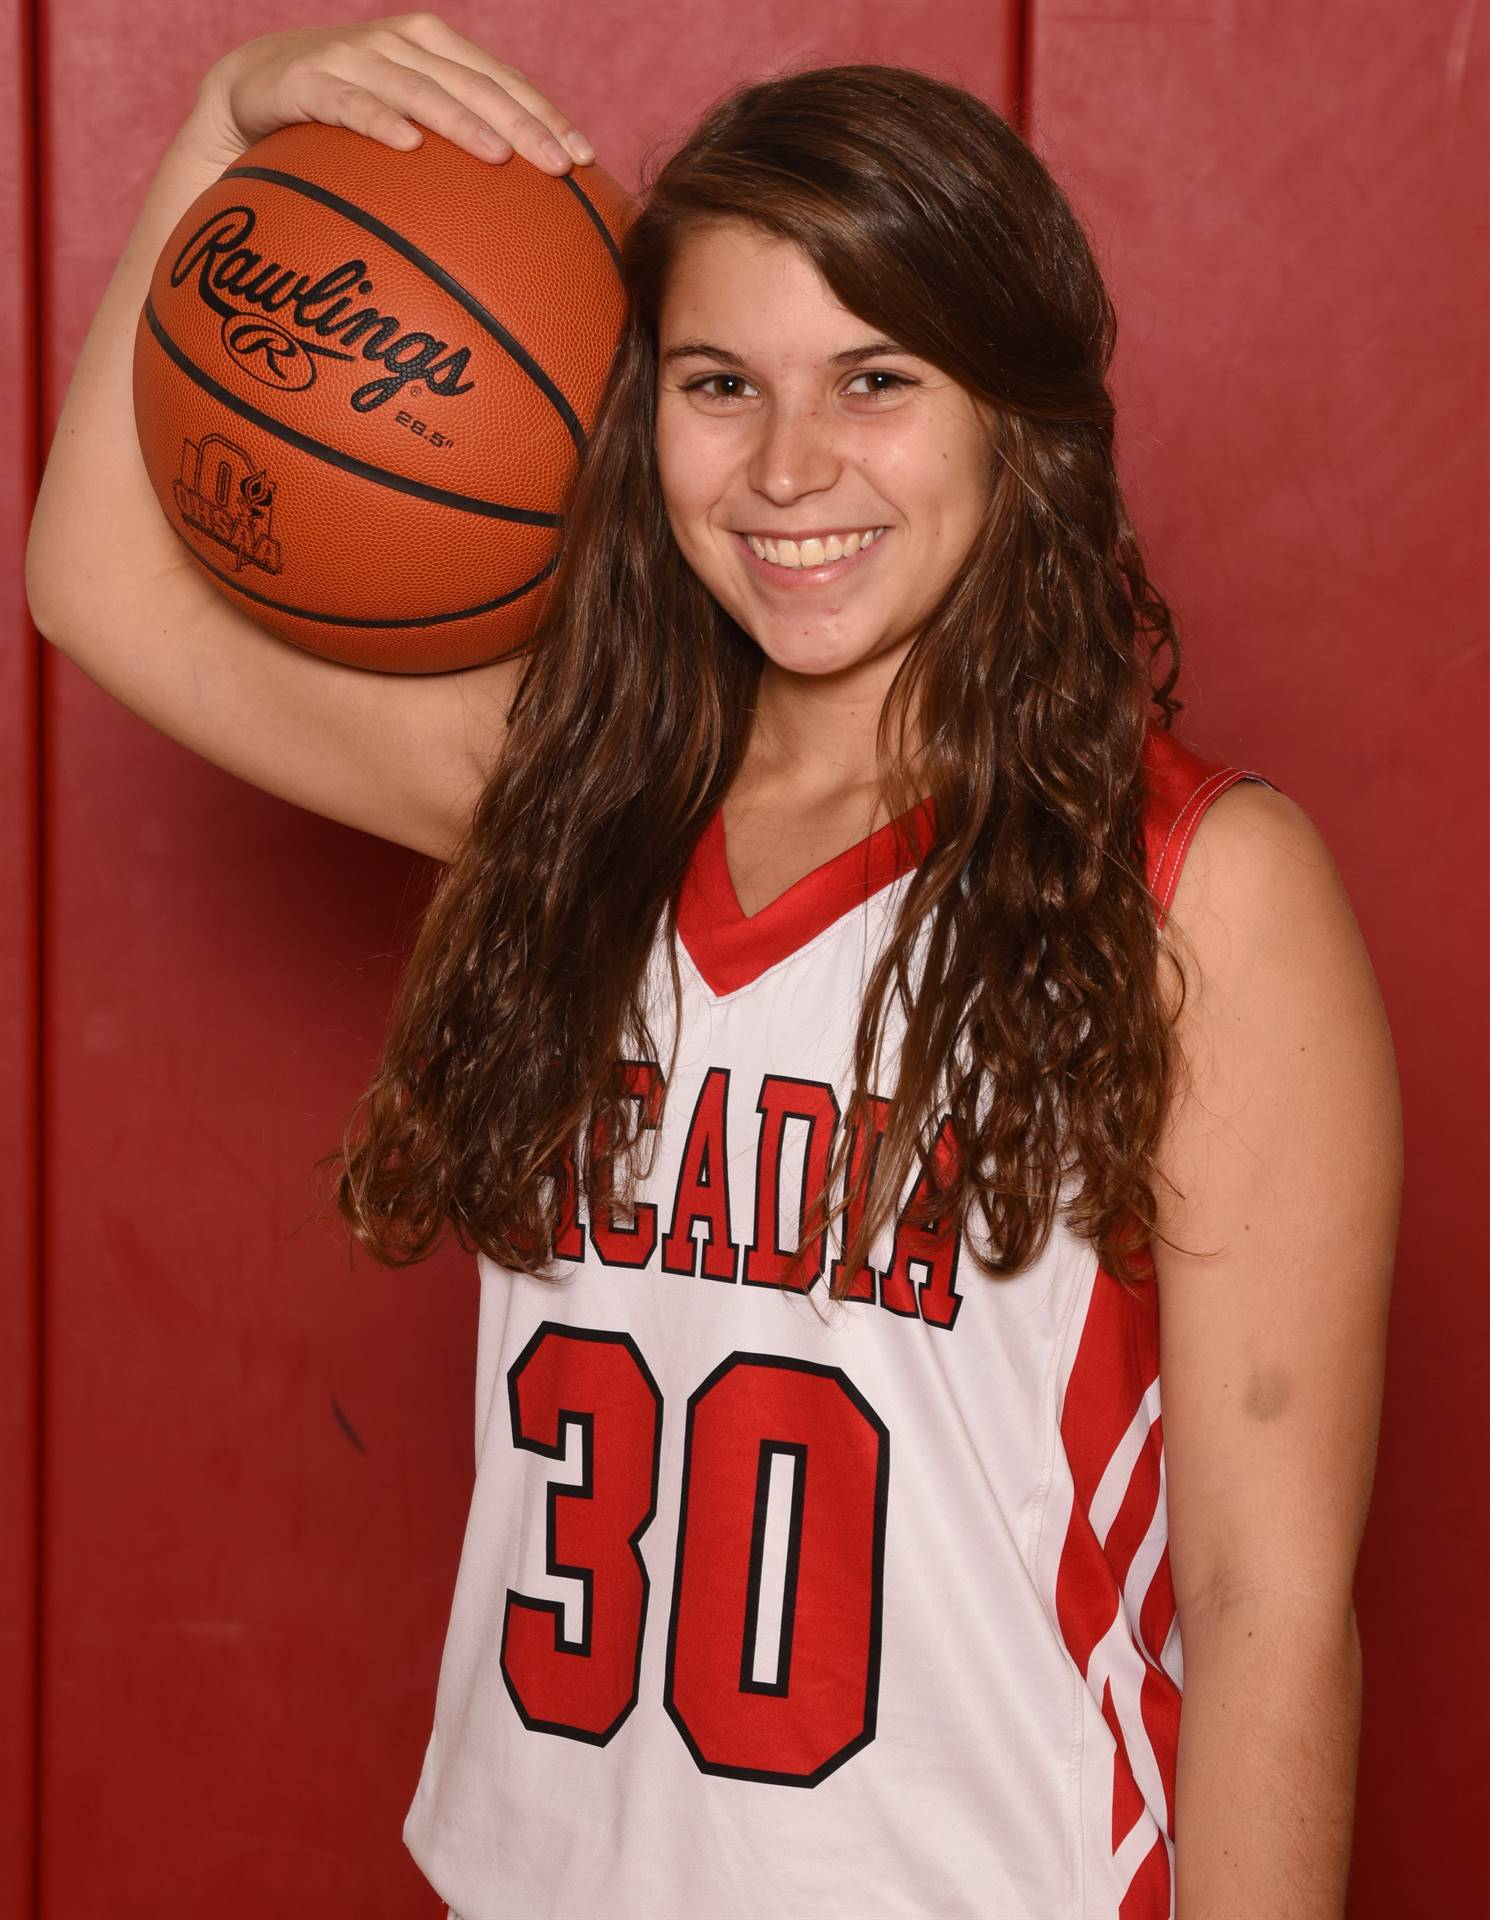 Senior Head Shot Photo Elizabeth Keefe - Basketball